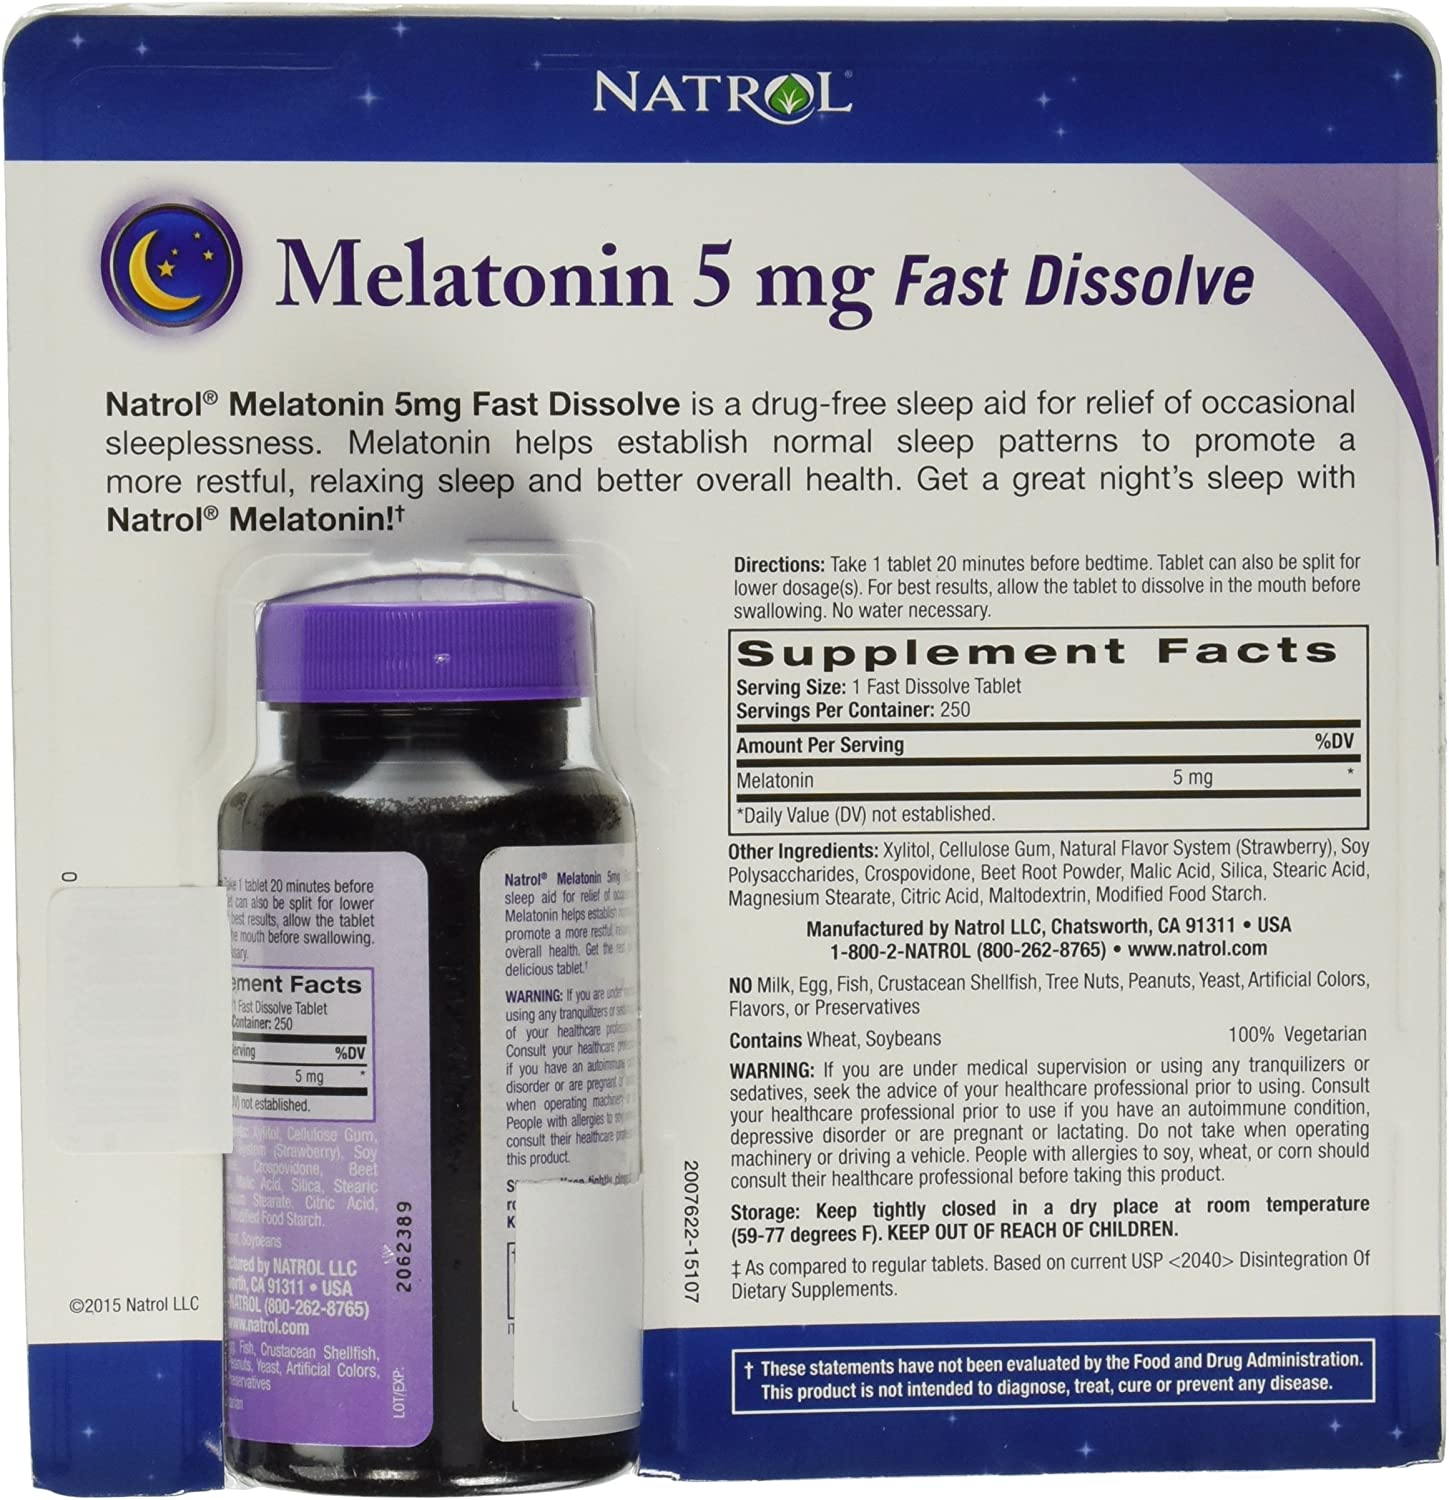 Natrol Melatonin 5 Mg, 250 Fast Dissolve Tablets Strawberry Flavor (Package might vary)